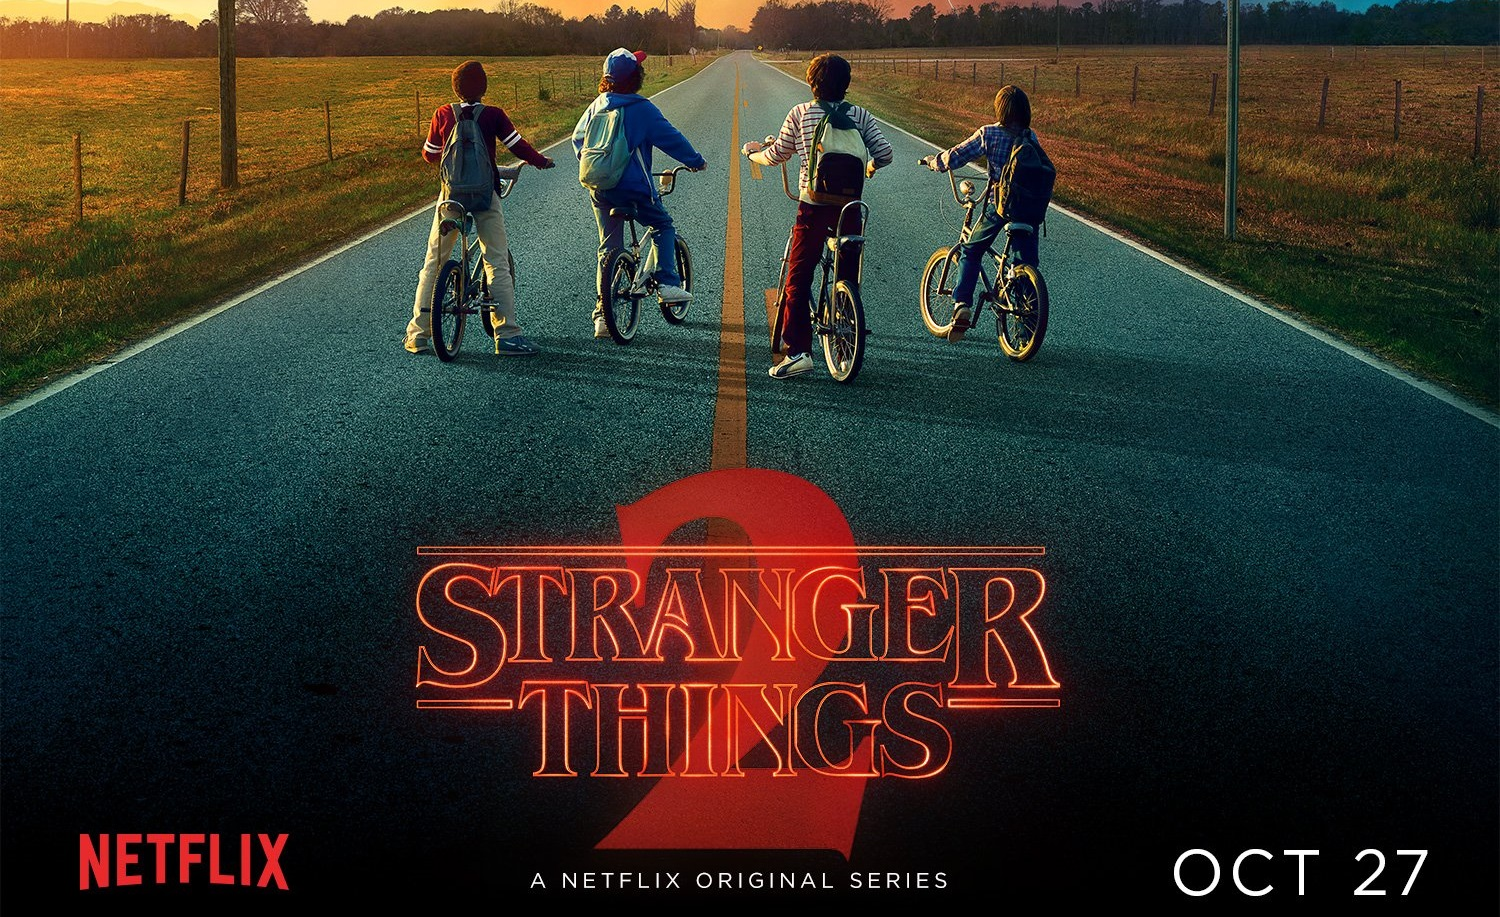 'Stranger Things' Season 2 Premiere Date Set For October